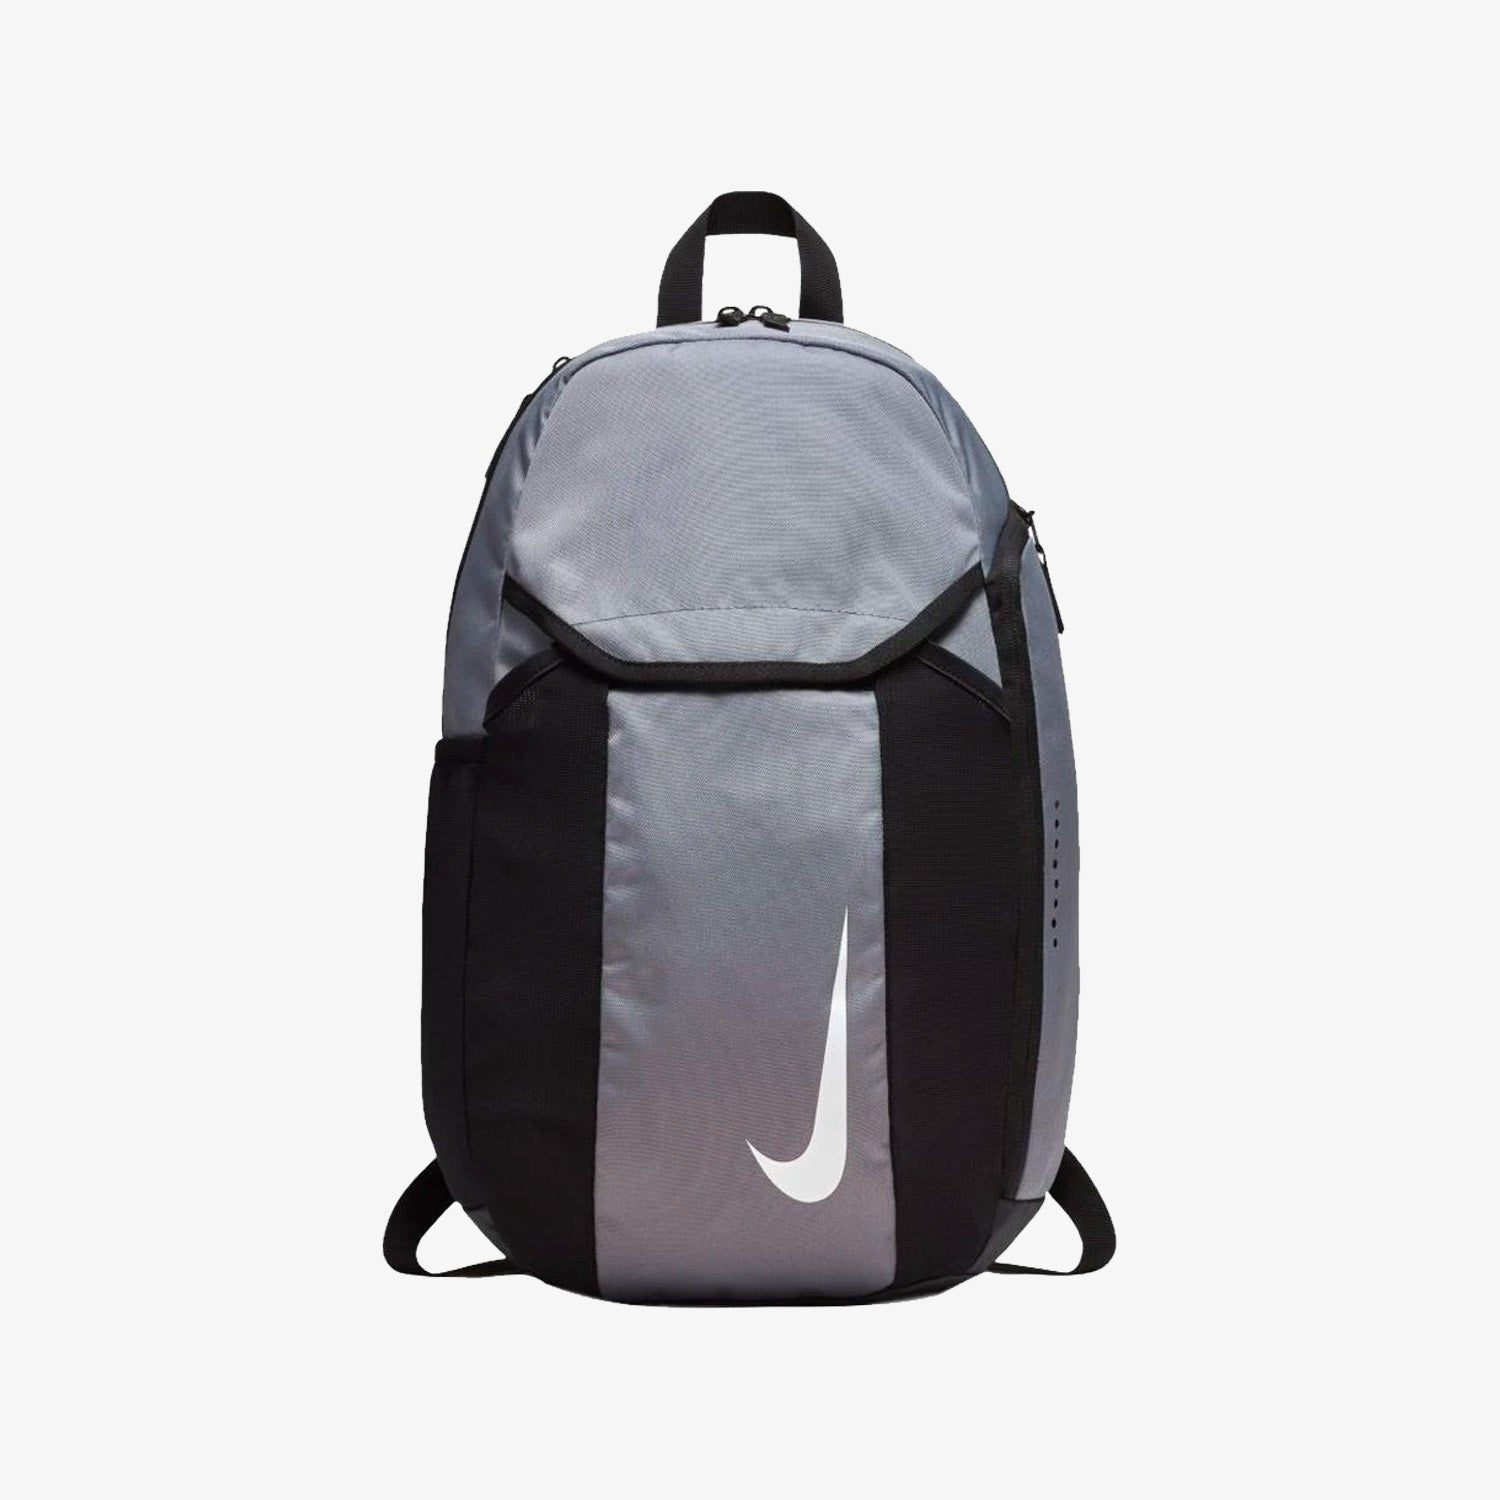 Academy Team Backpack - Cool Grey